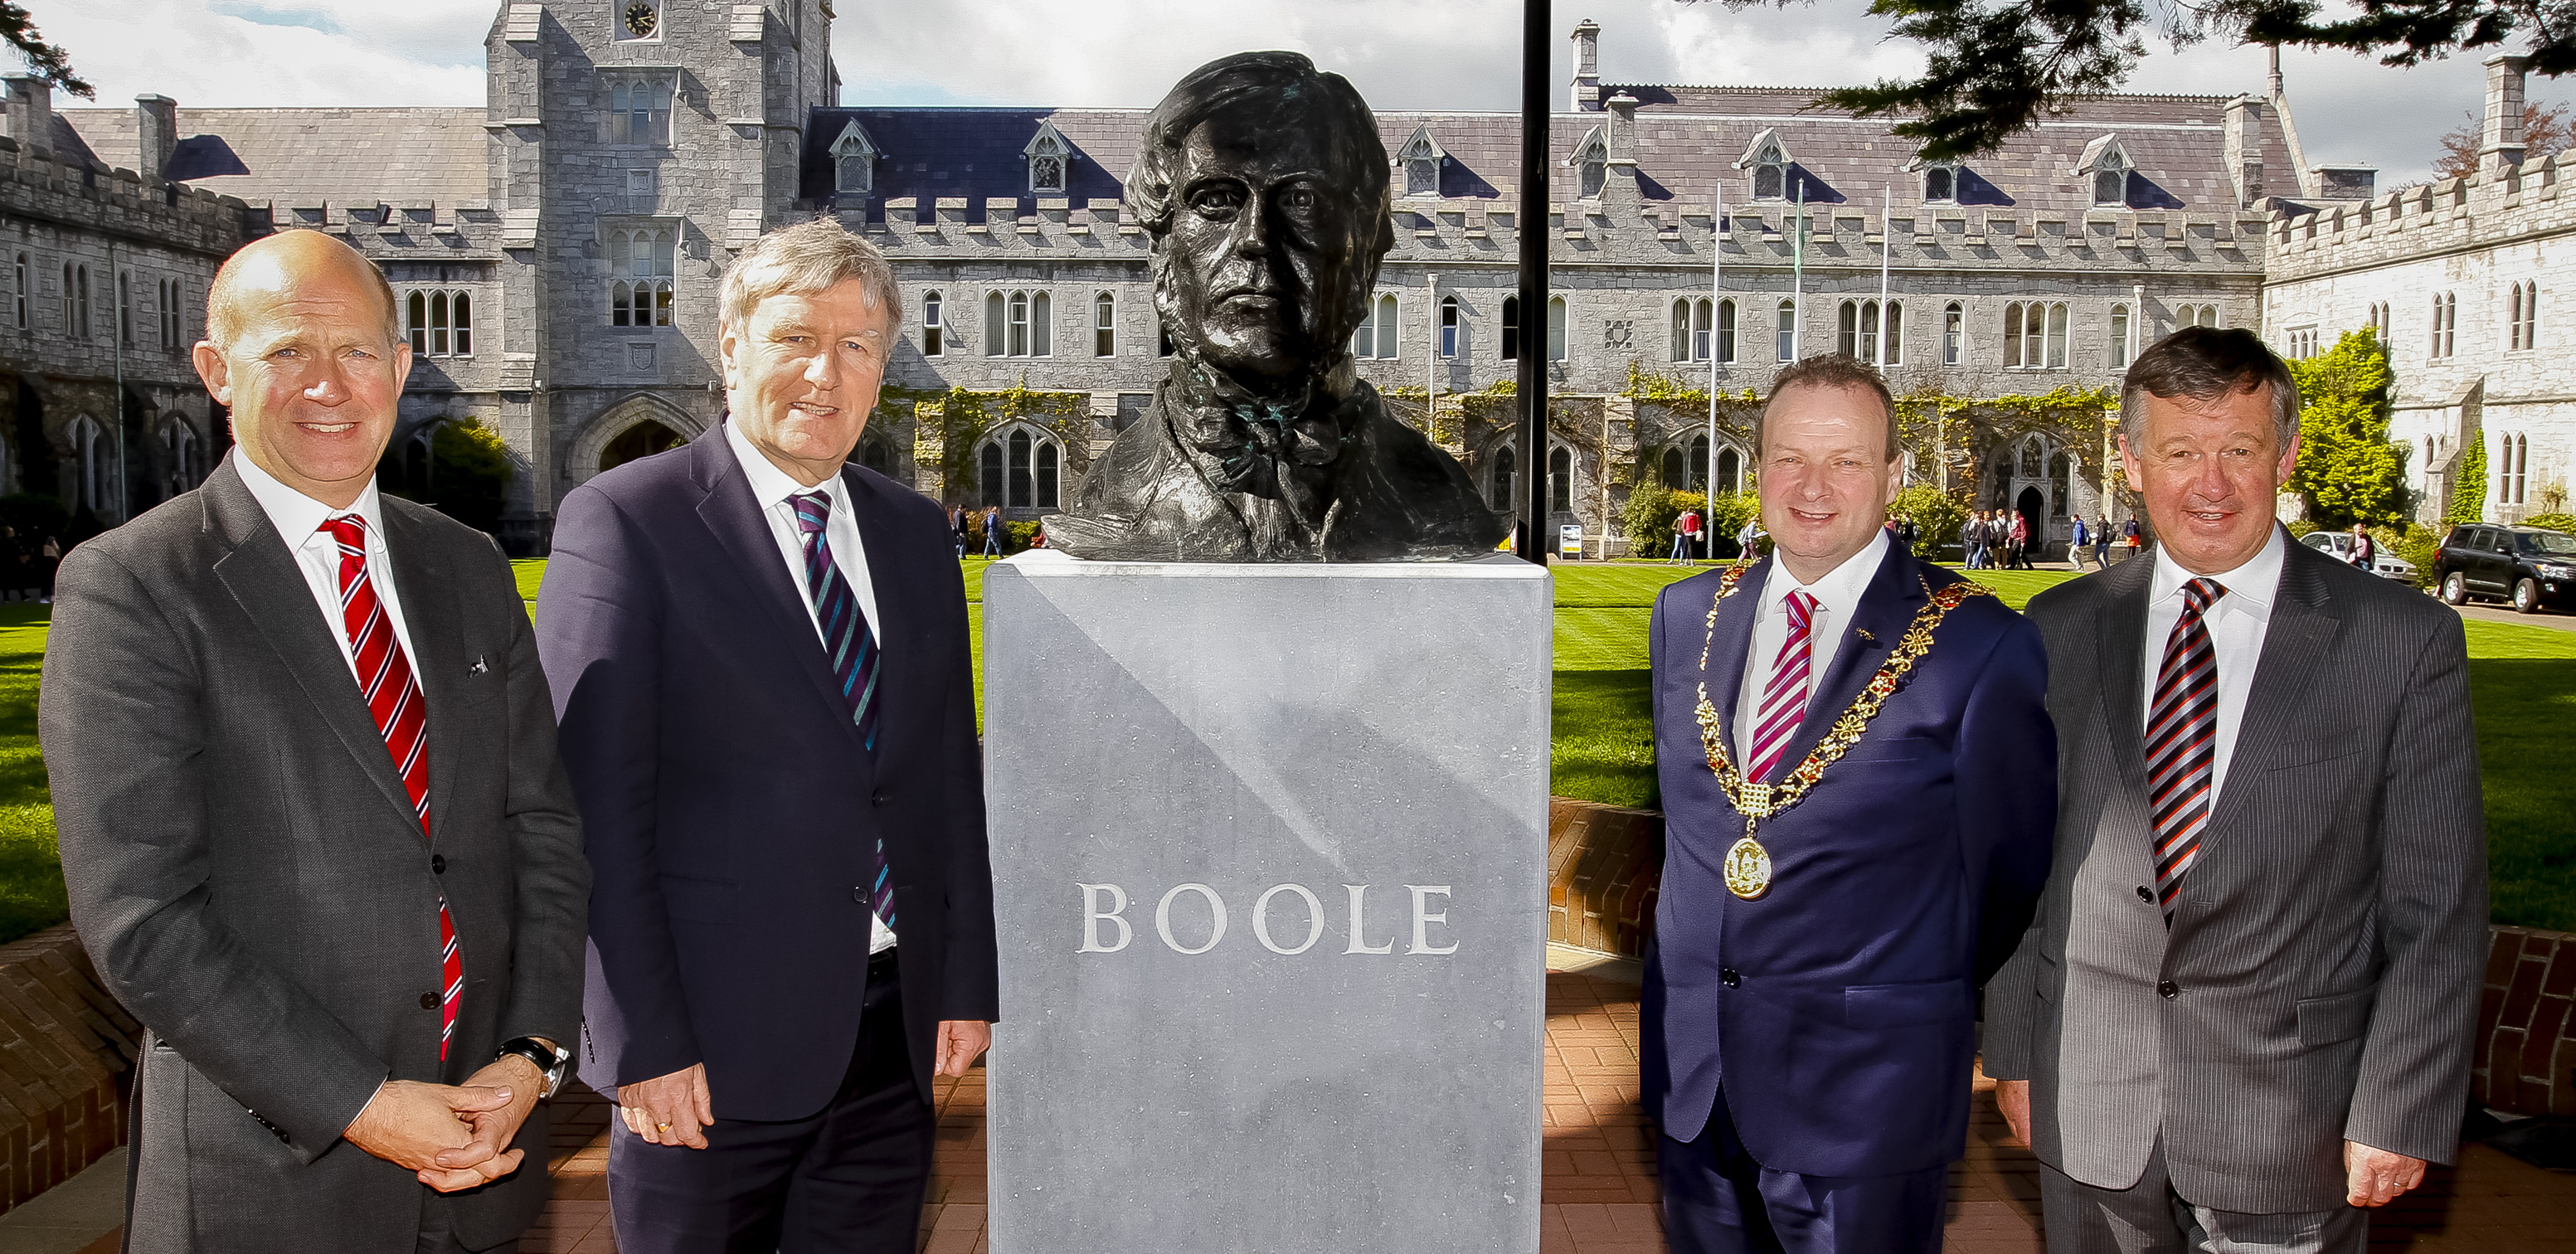 George Boole Bust Unveiling